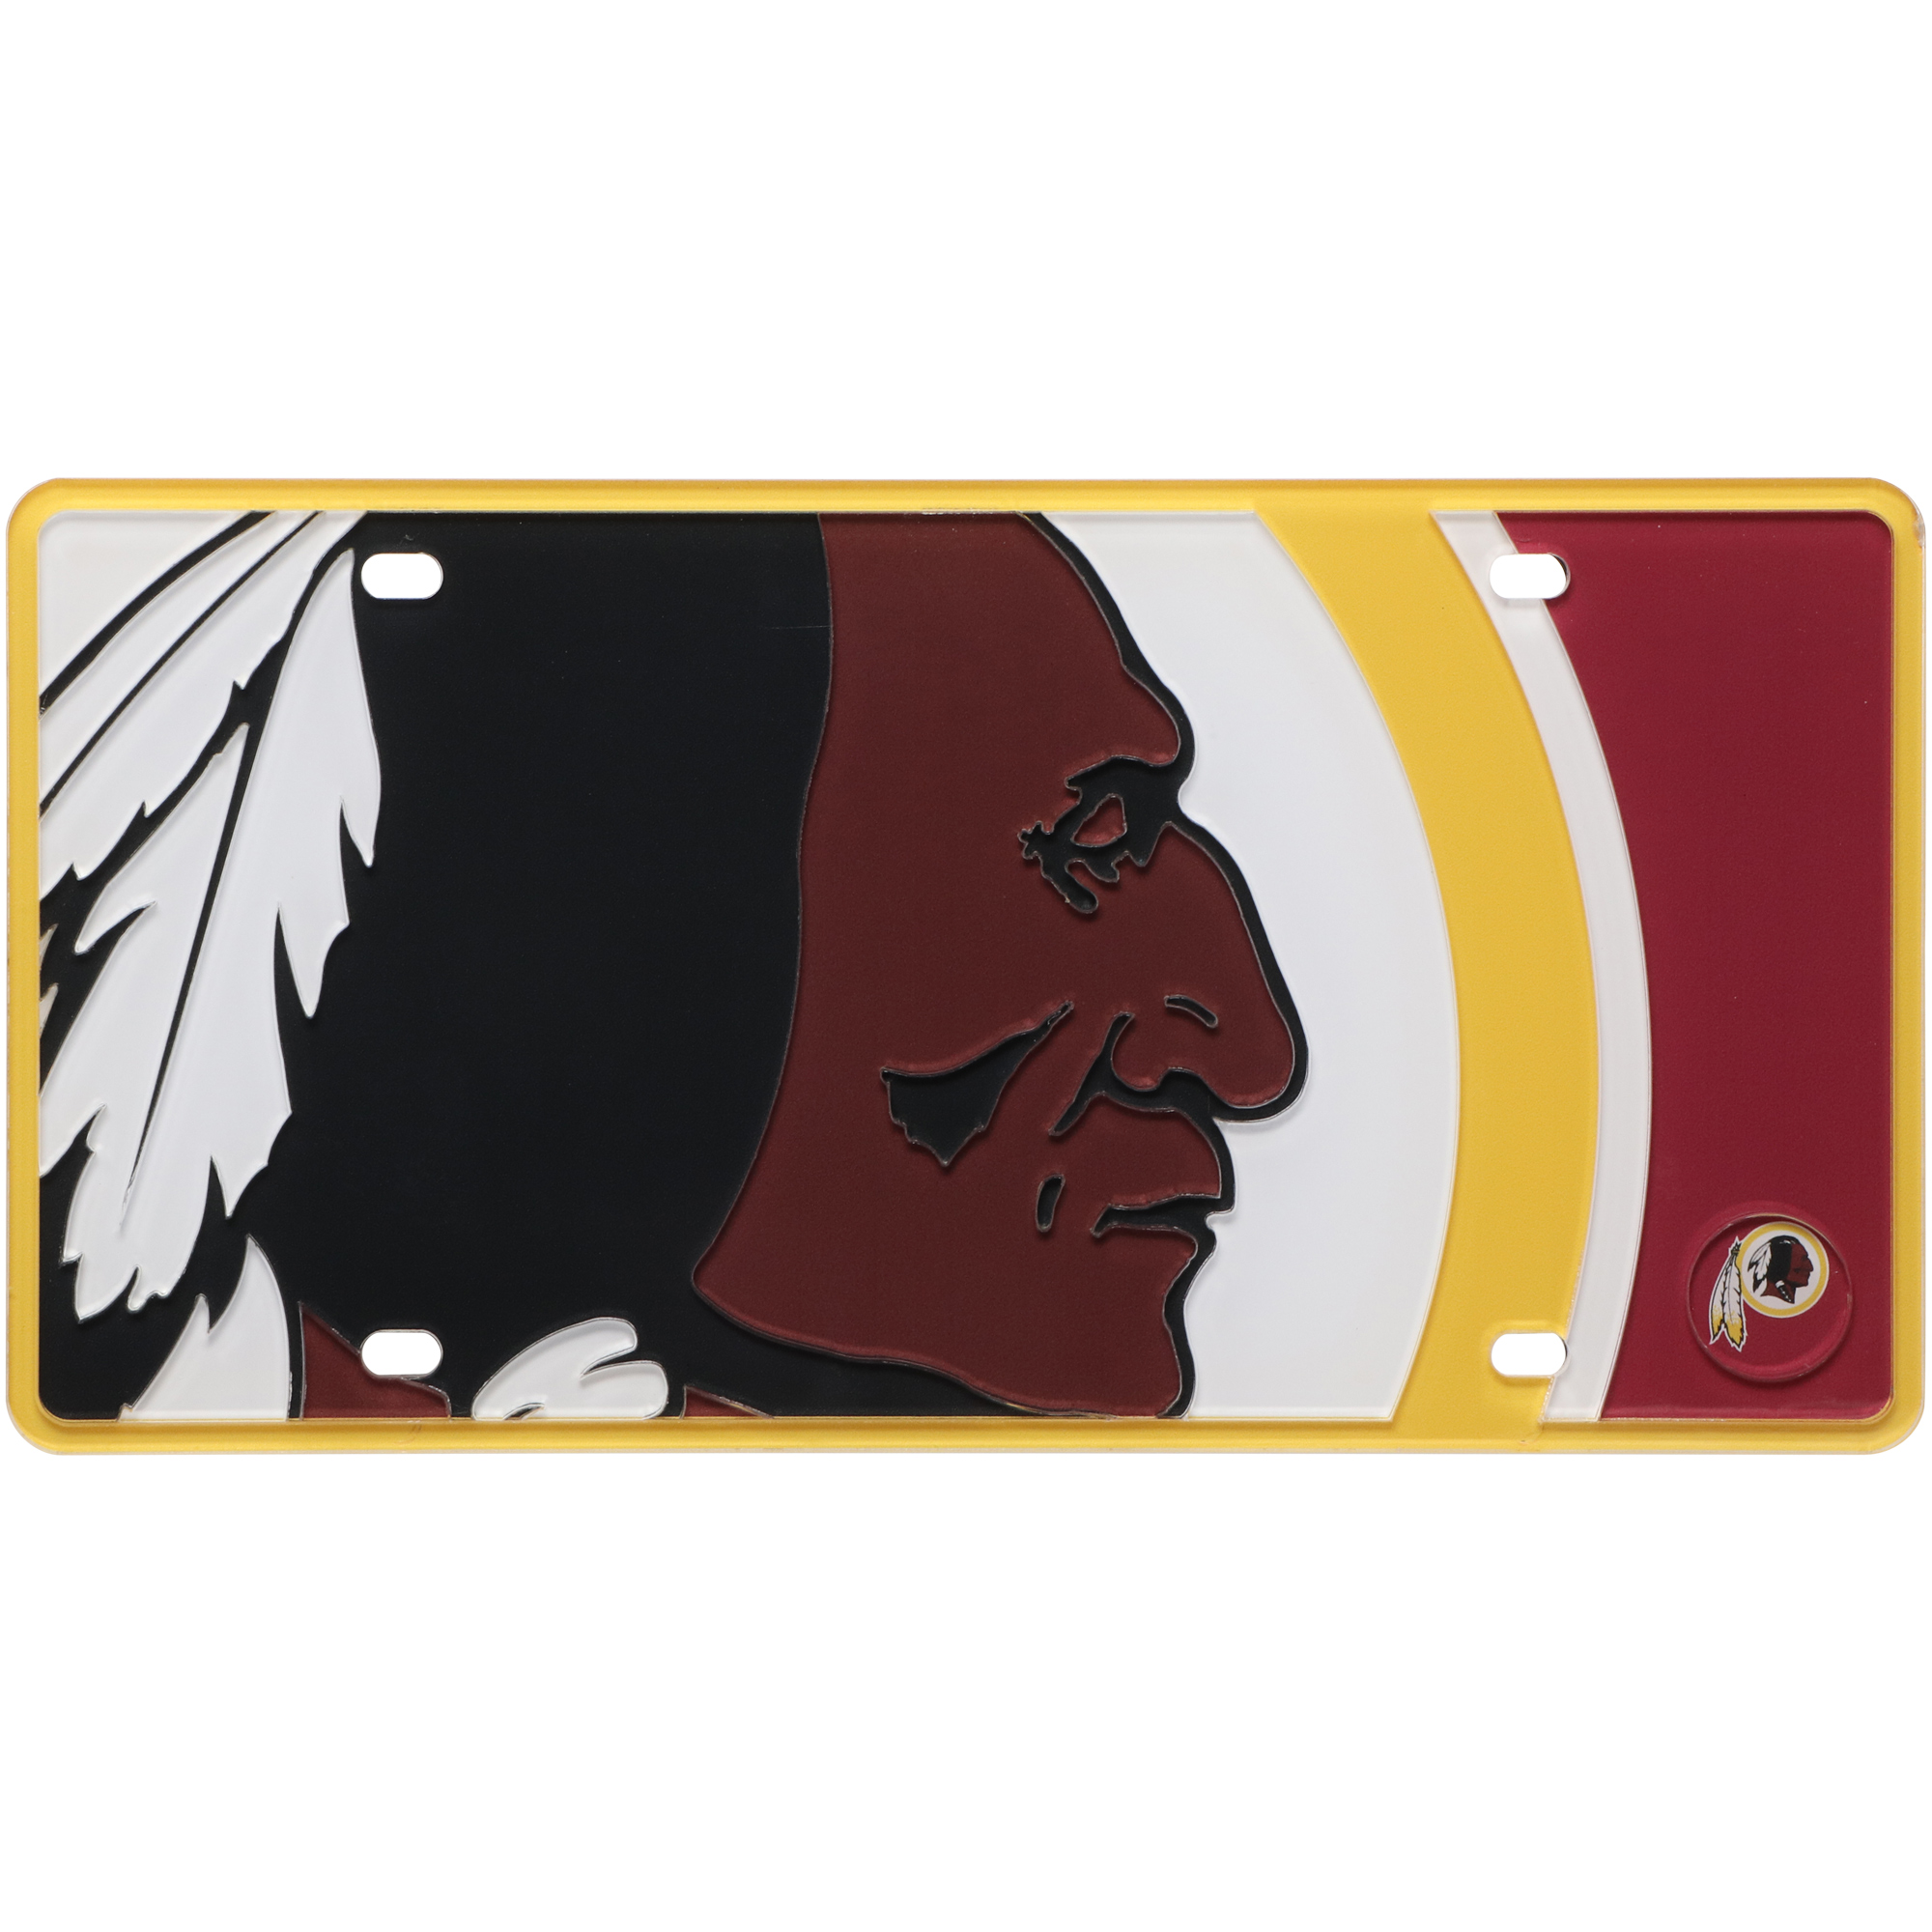 Washington Redskins Mega Acrylic License Plate - No Size